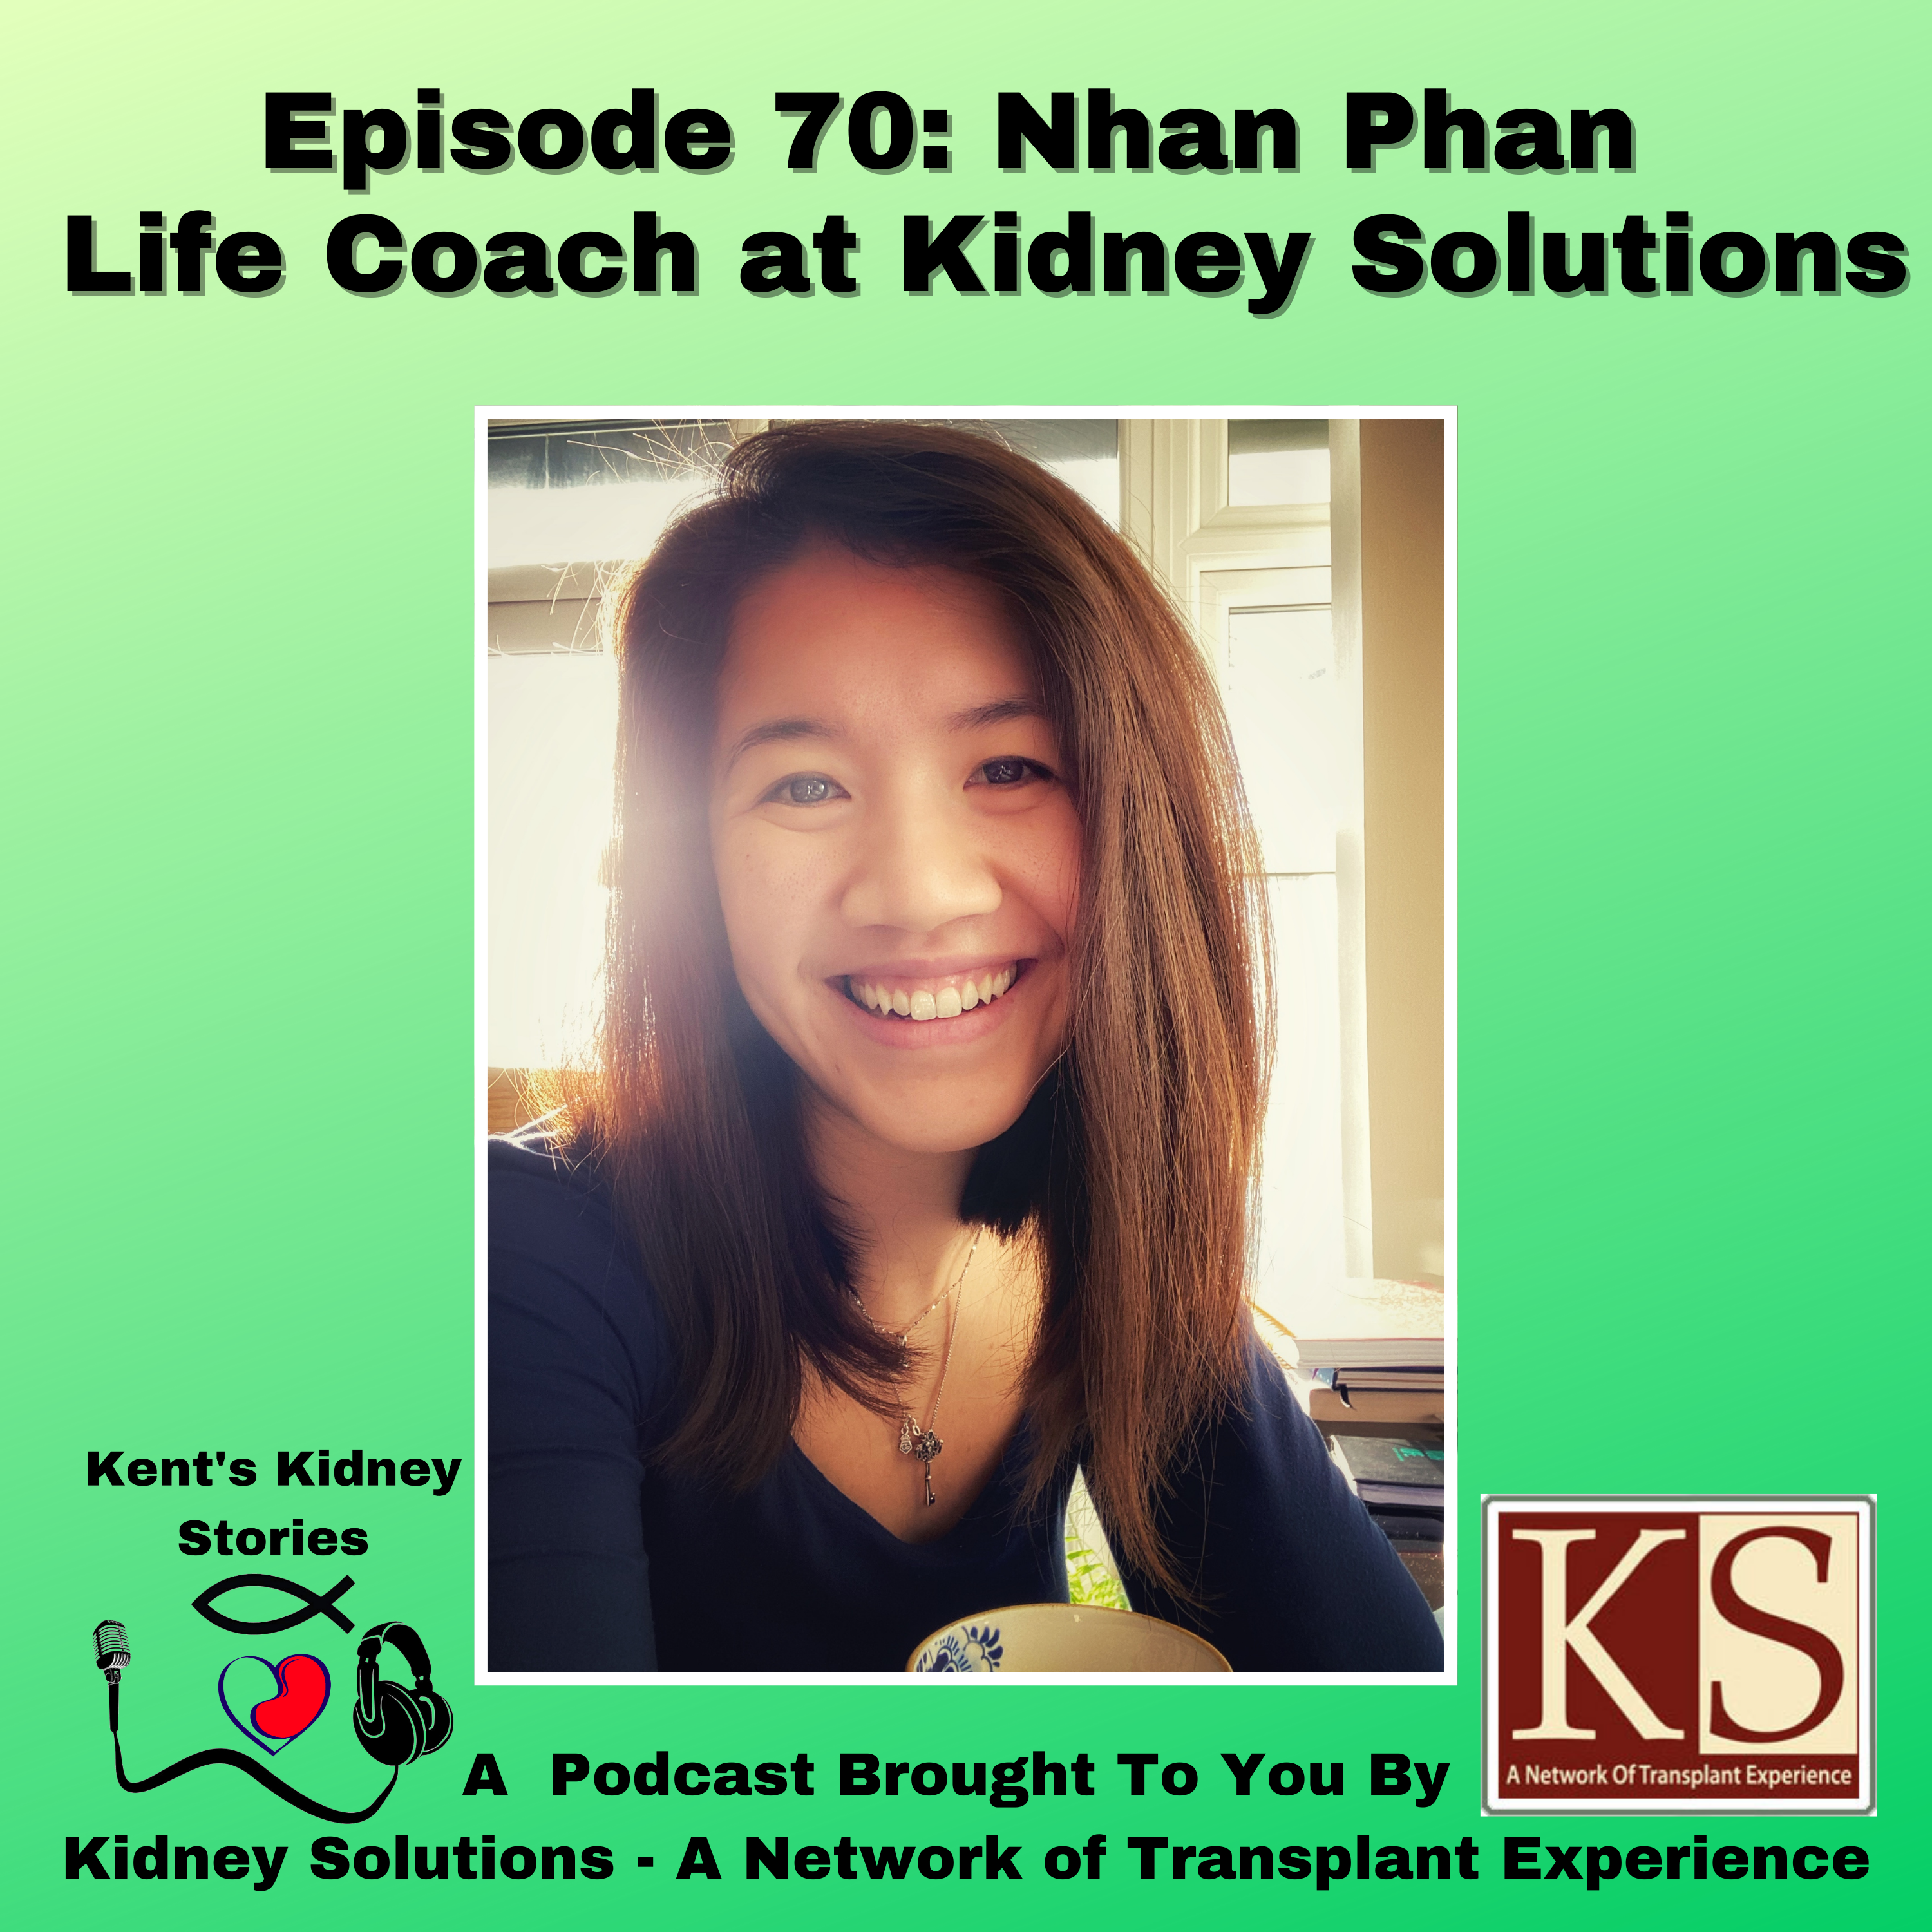 Episode 70: Nhan Phan Life Coach at Kidney Solutions